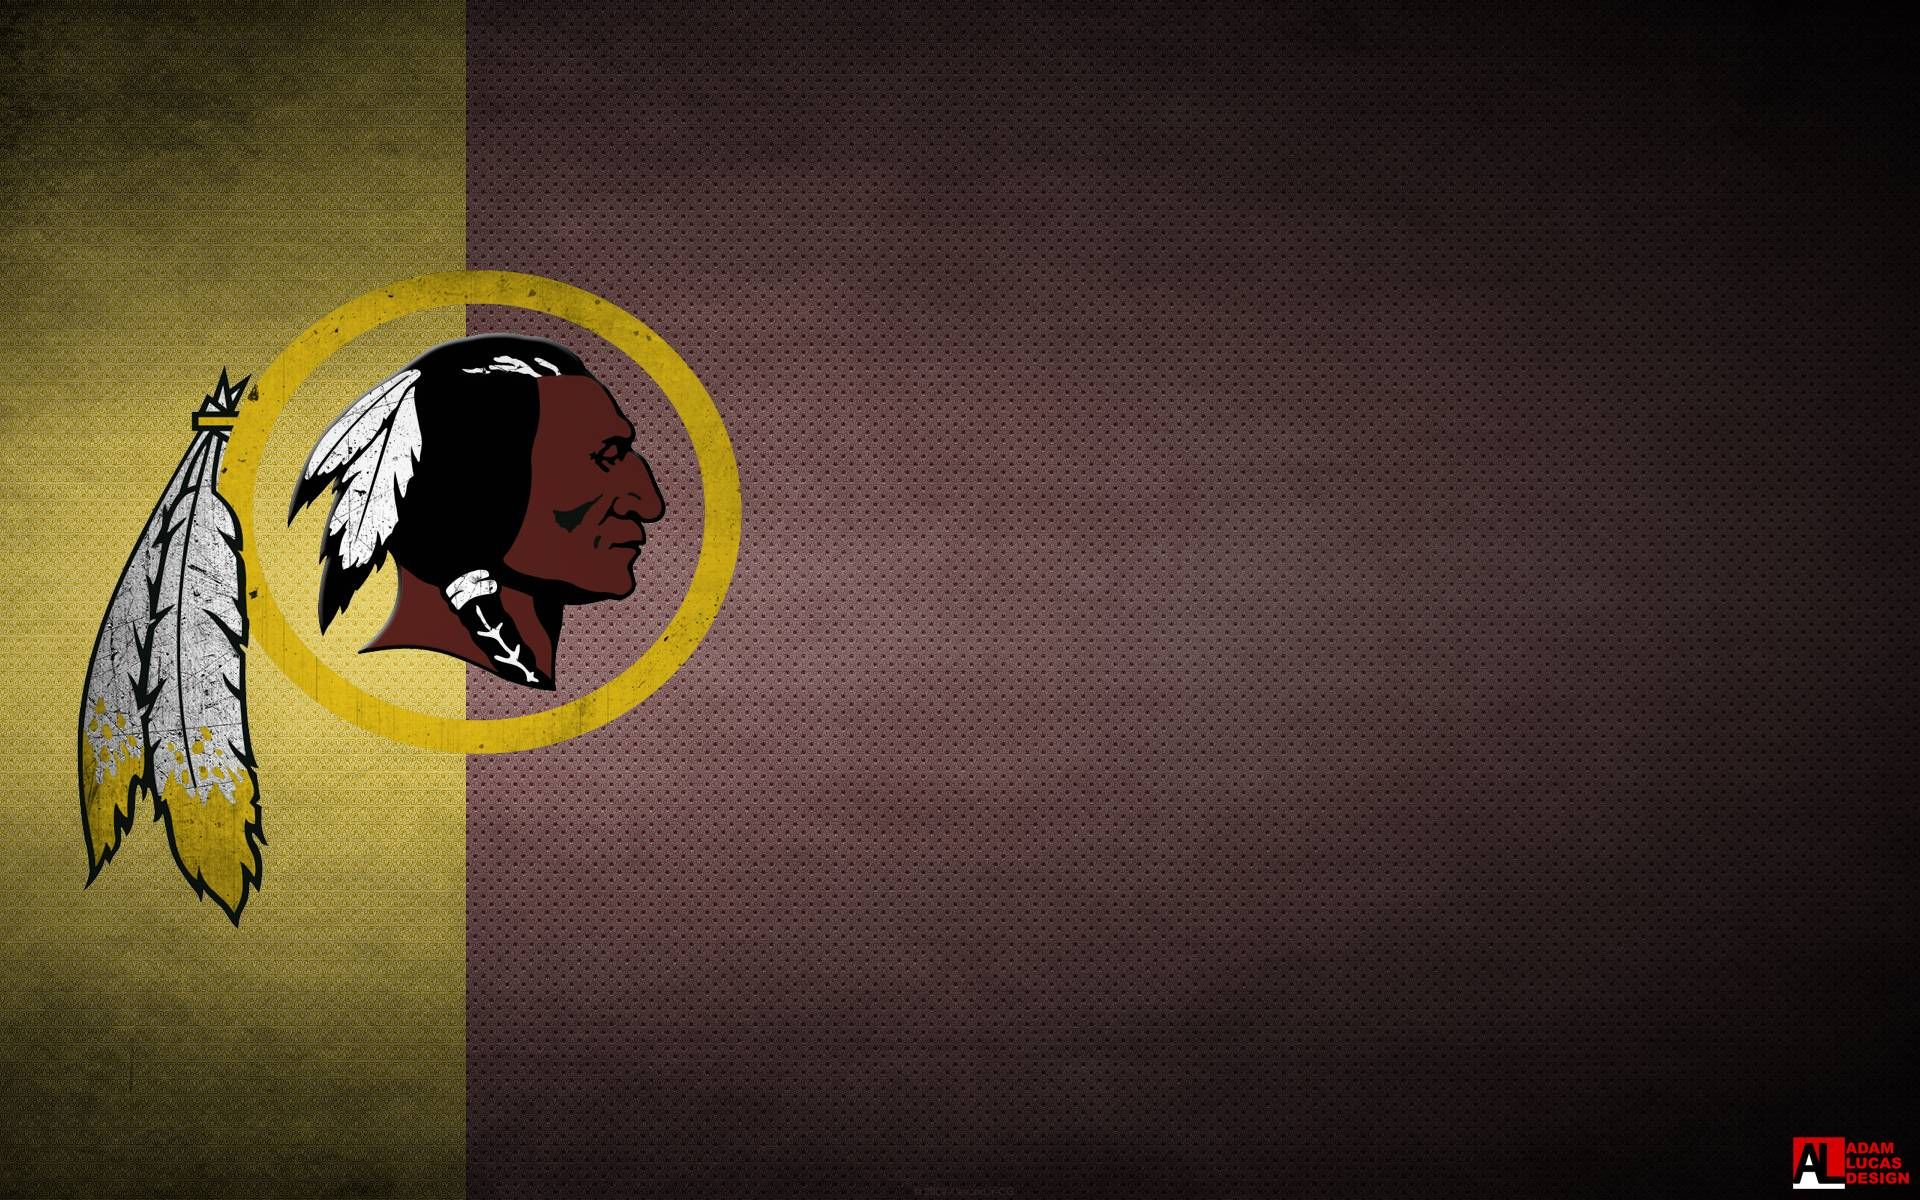 Download free redskins wallpapers for your mobile phone most 1440 download free redskins wallpapers for your mobile phone most 1440900 redskins wallpaper 42 voltagebd Choice Image